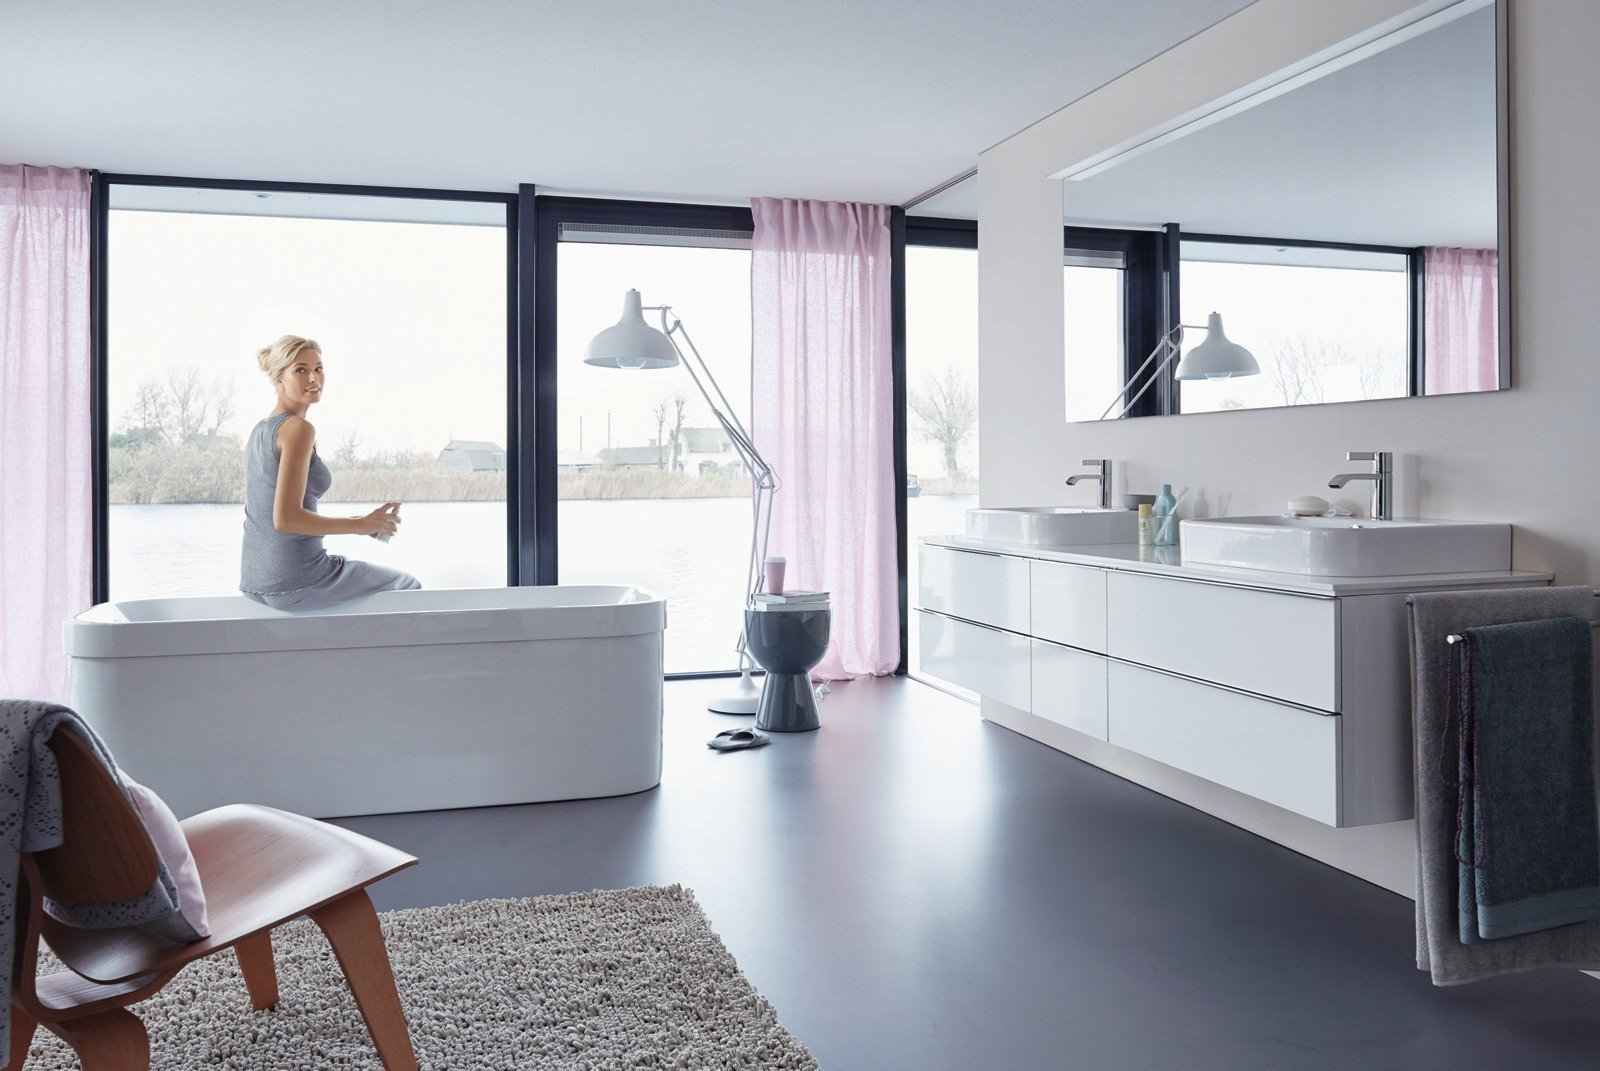 Salle De Bain Duravit Of Happy D 2 Bathroom Mirror By Duravit Design Sieger Design